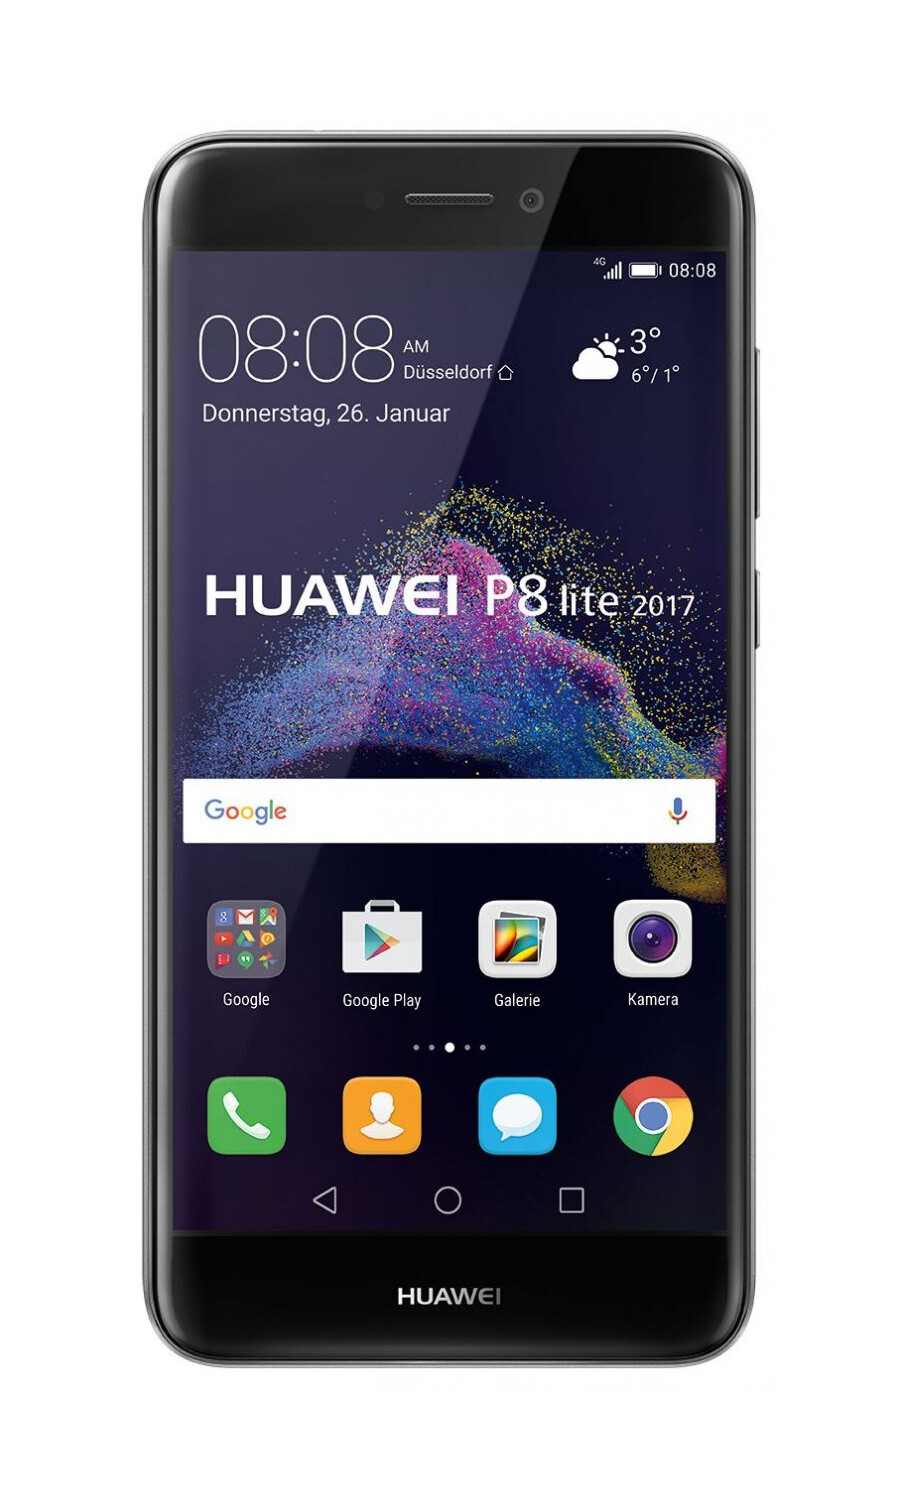 Huawei P8 lite (2017) introduced with Kirin 655 chipset ...